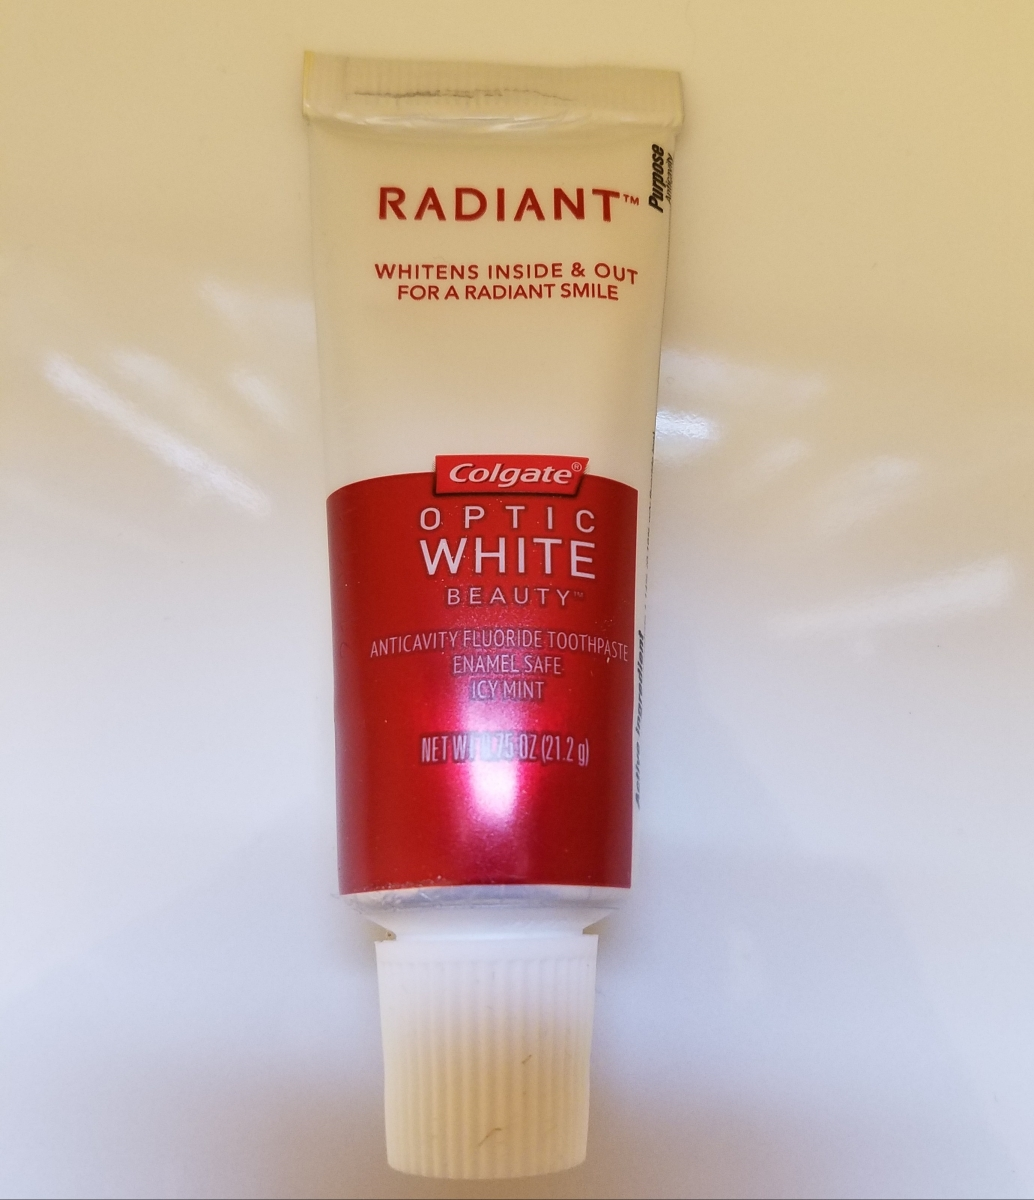 Colgate Optic White Radiant Toothpaste Review